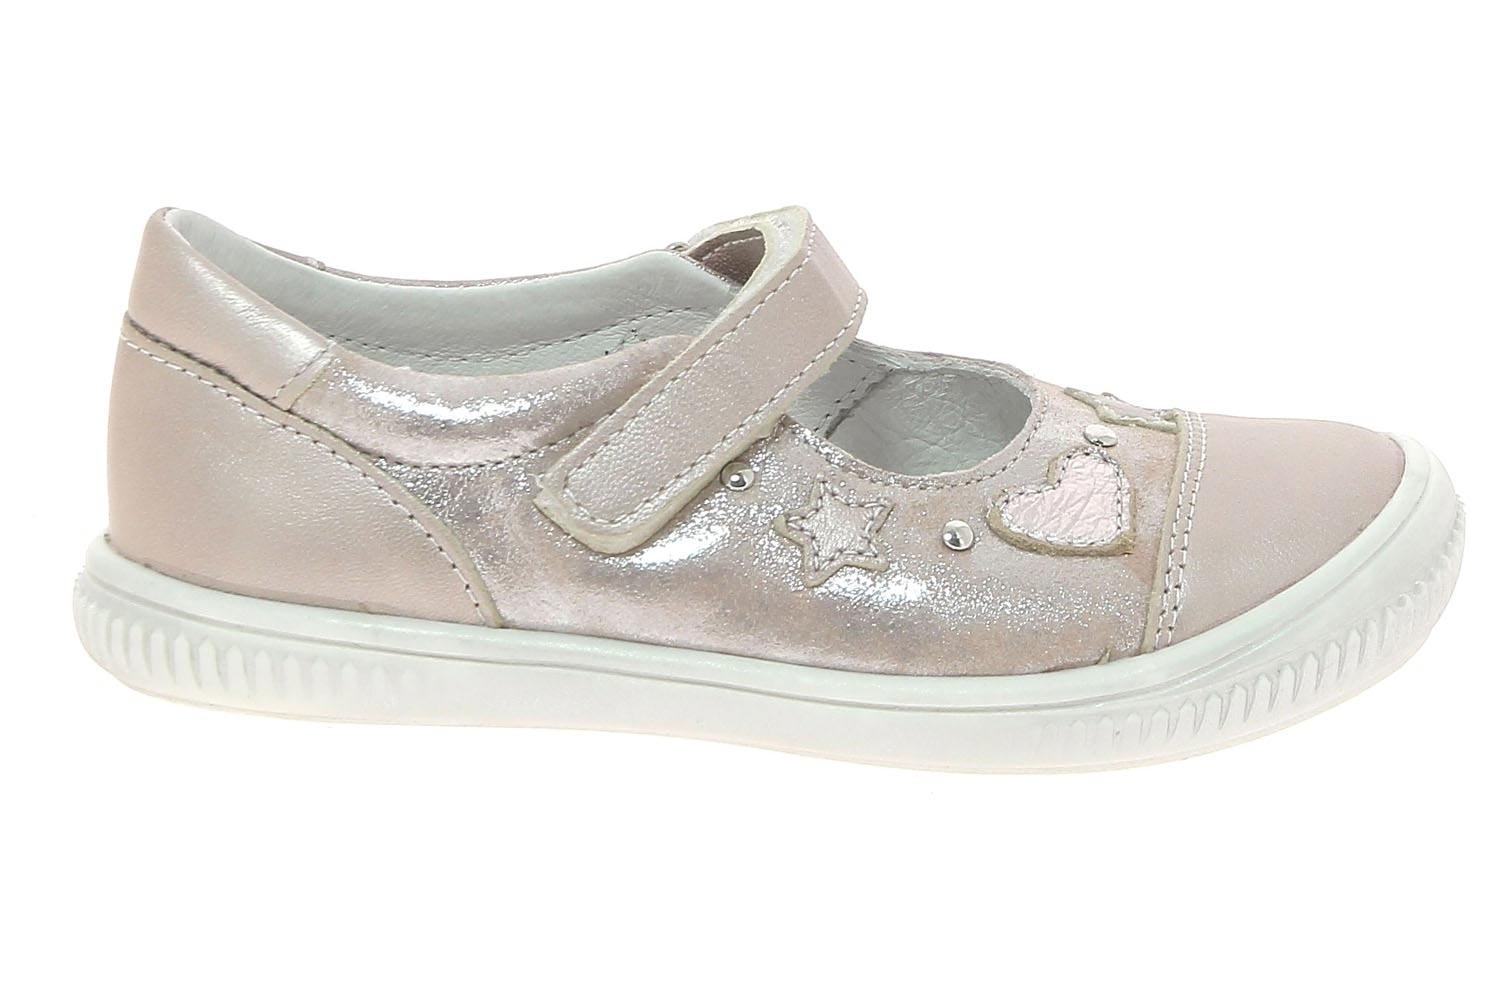 Basses Pour Chaussures Fille Simsebel Cypres Rose thrBCsxQd